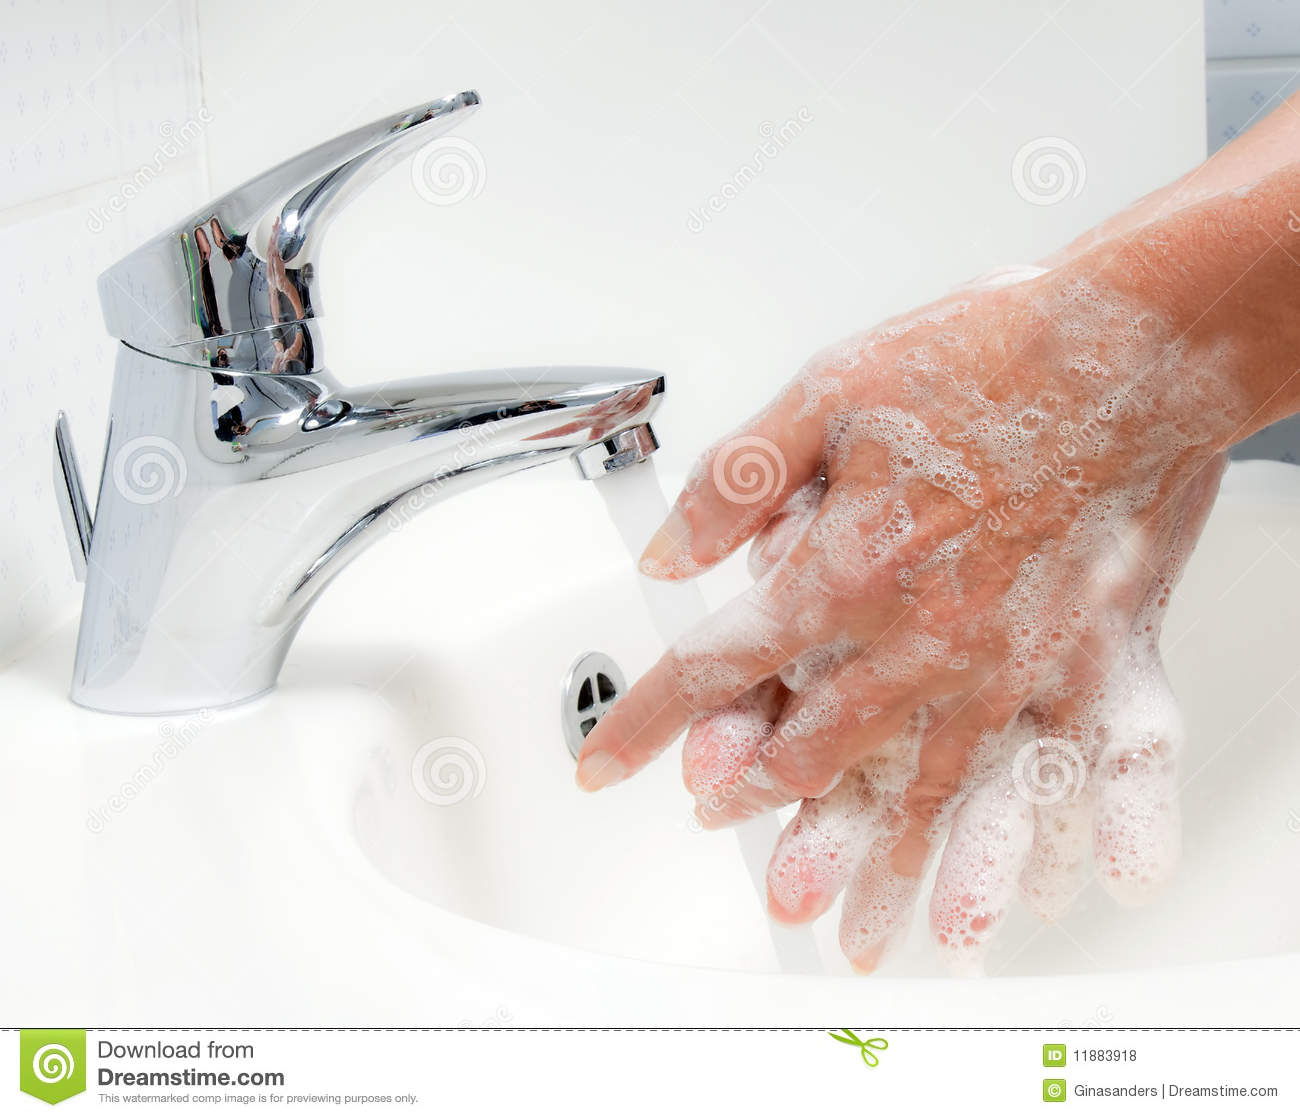 Hand washing soap and water clipart graphic library library Hand washing soap and water clipart - ClipartNinja graphic library library